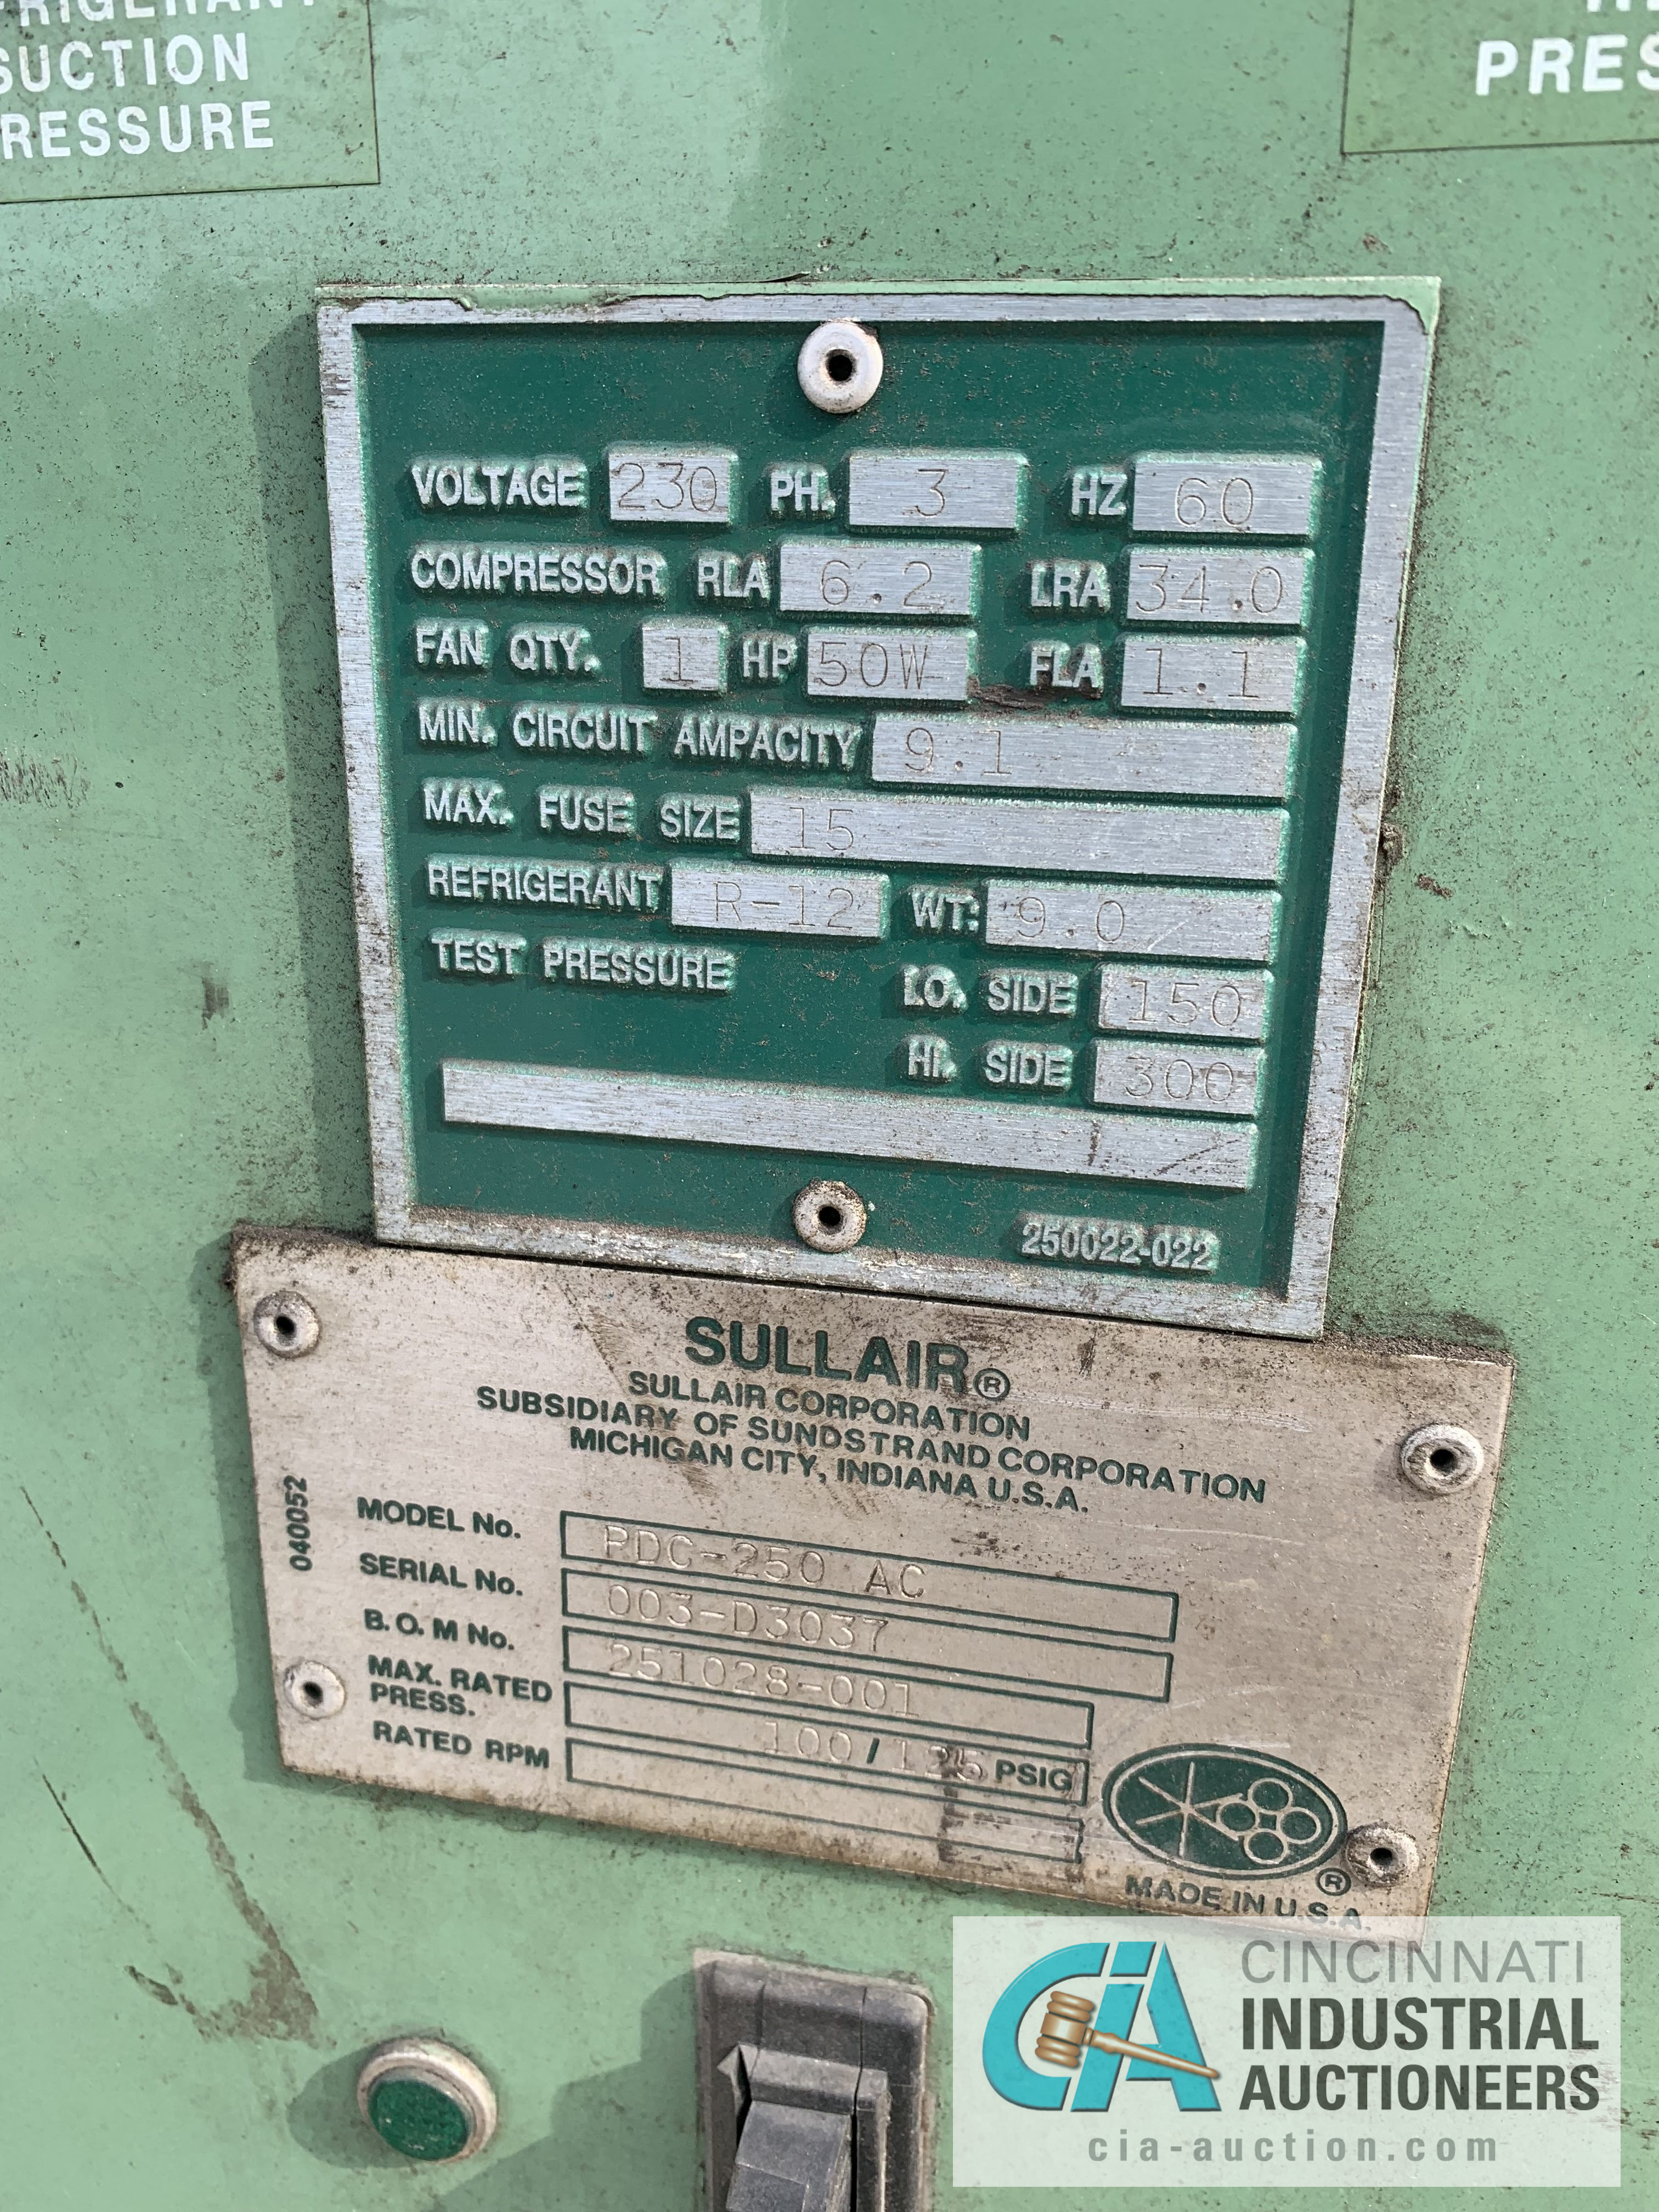 SULLAIR MODEL PDC-250 A/C AIR DRYER - $20.00 Rigging Fee Due to Onsite Rigger - Located in - Image 2 of 2